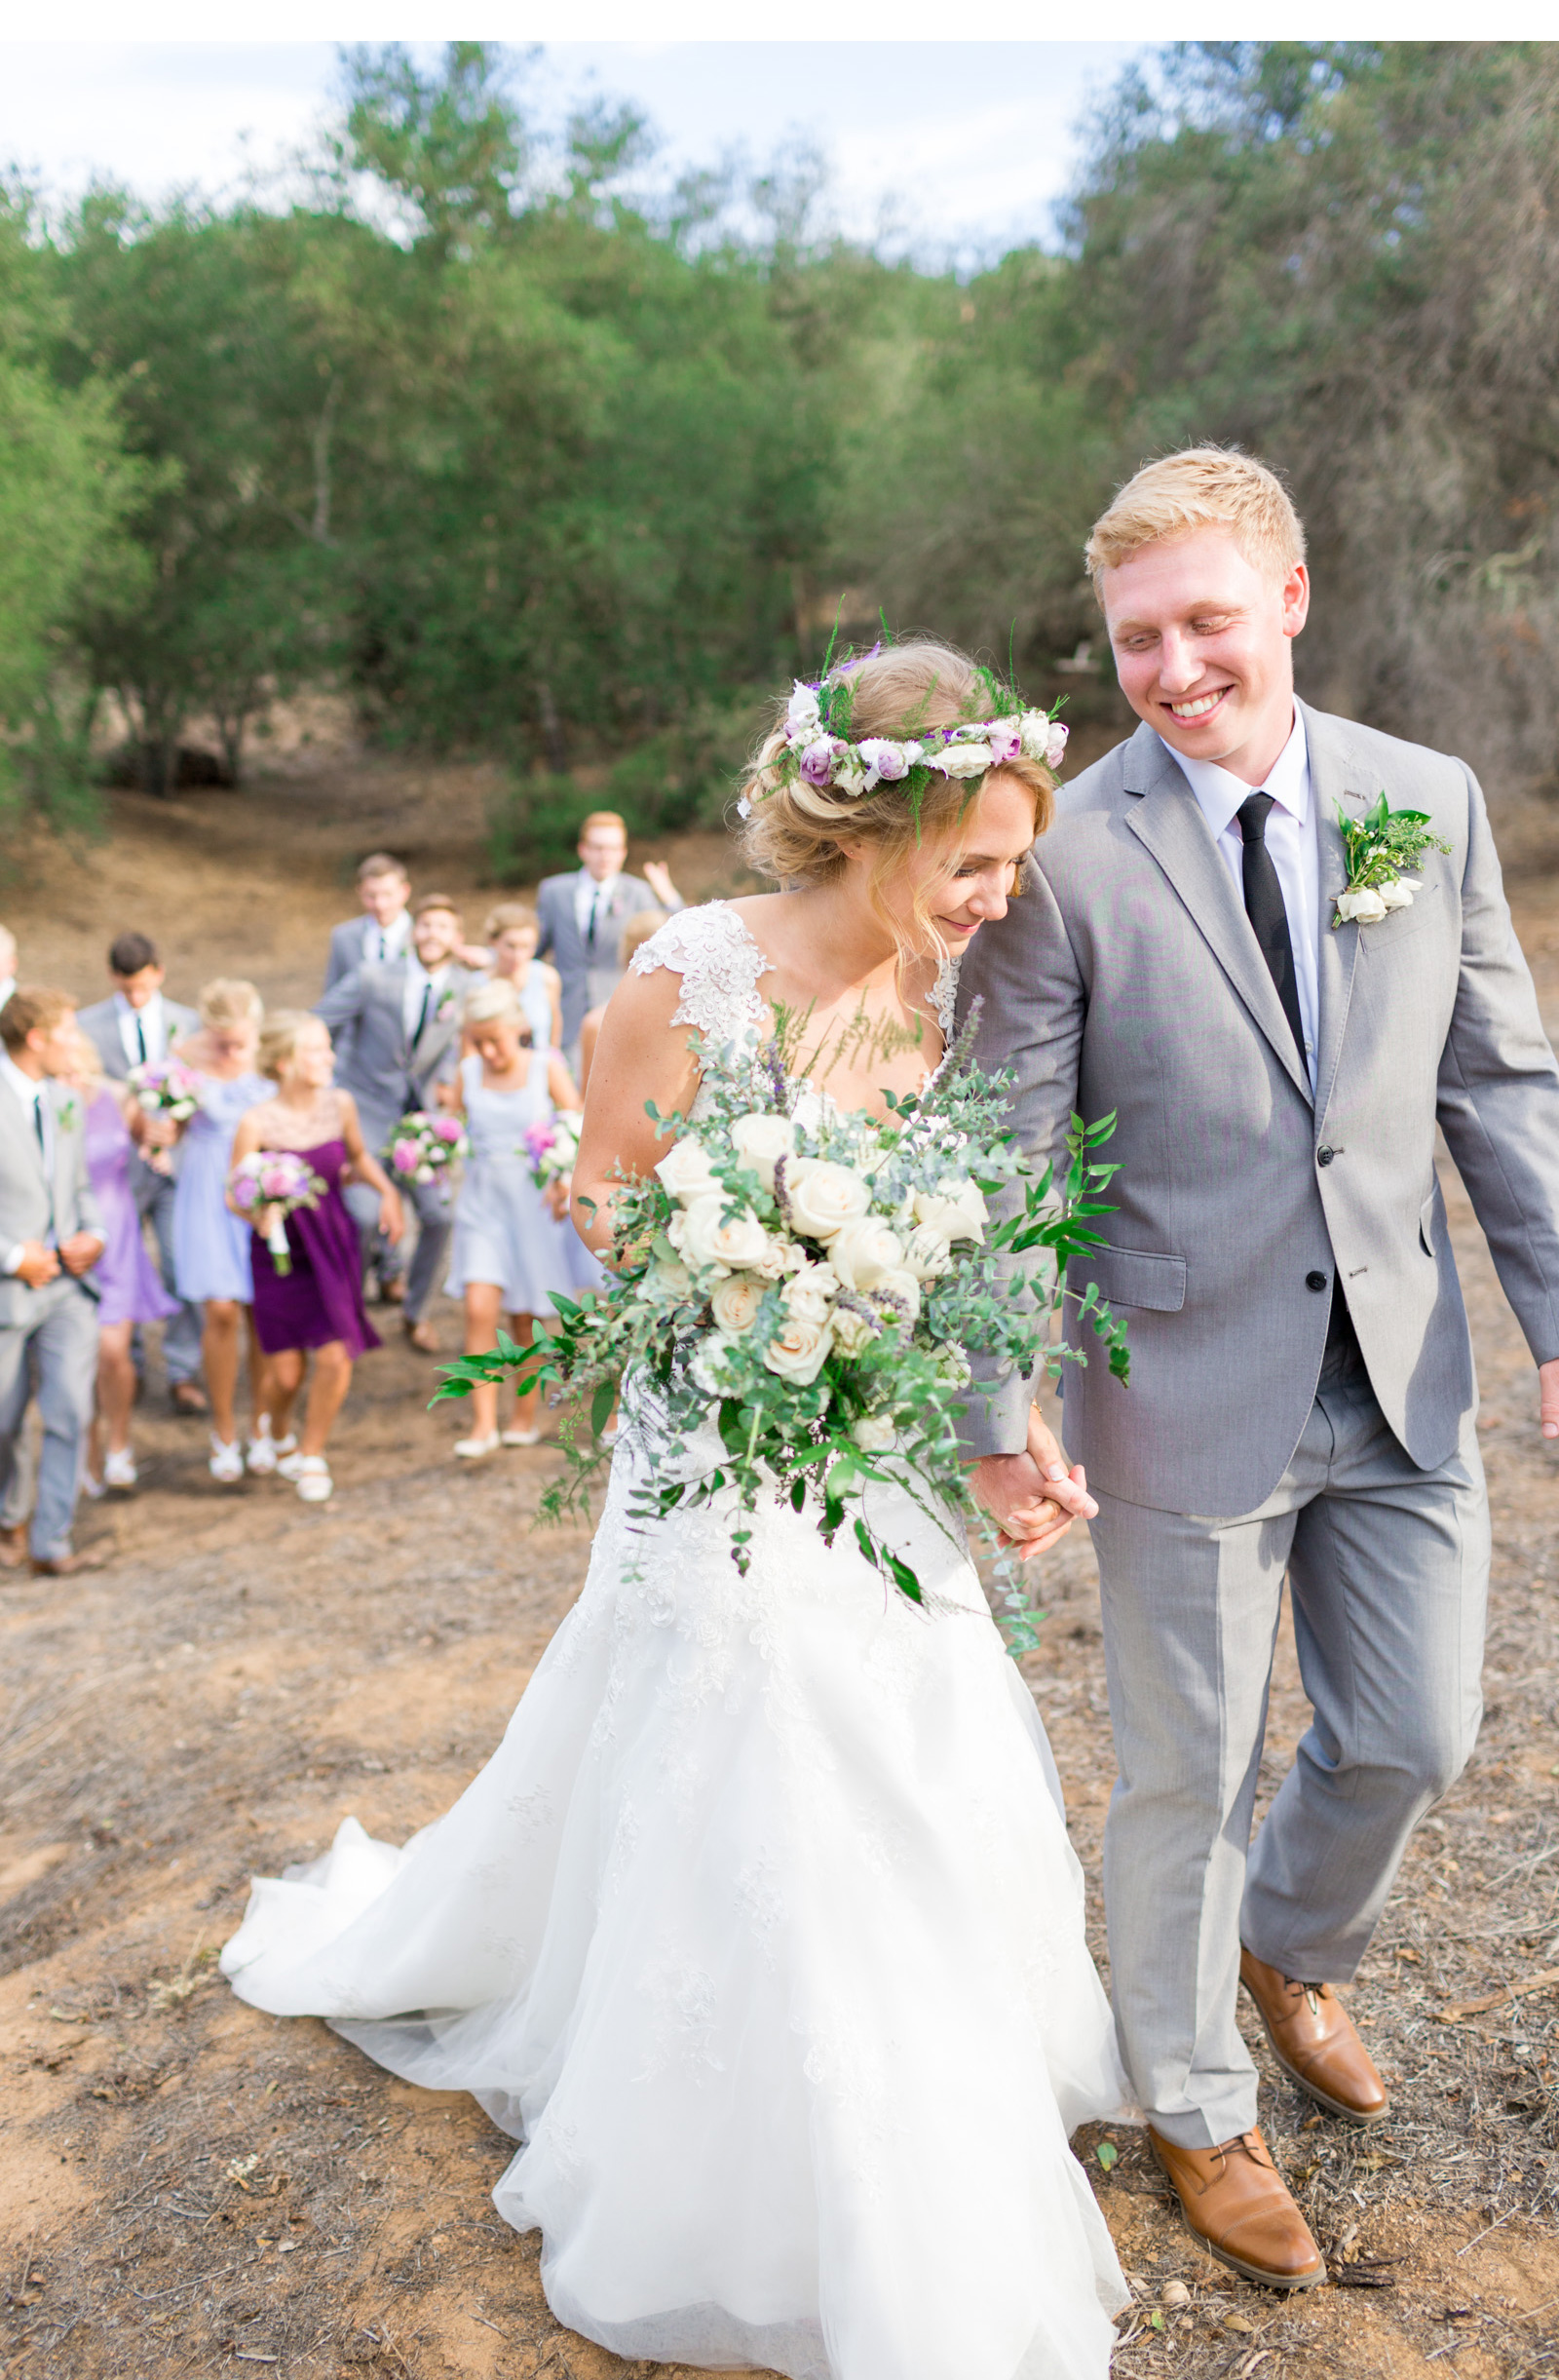 Thomas-&-Jessica-San-Diego-Wedding--Natalie-Schutt-Photography_02.jpg